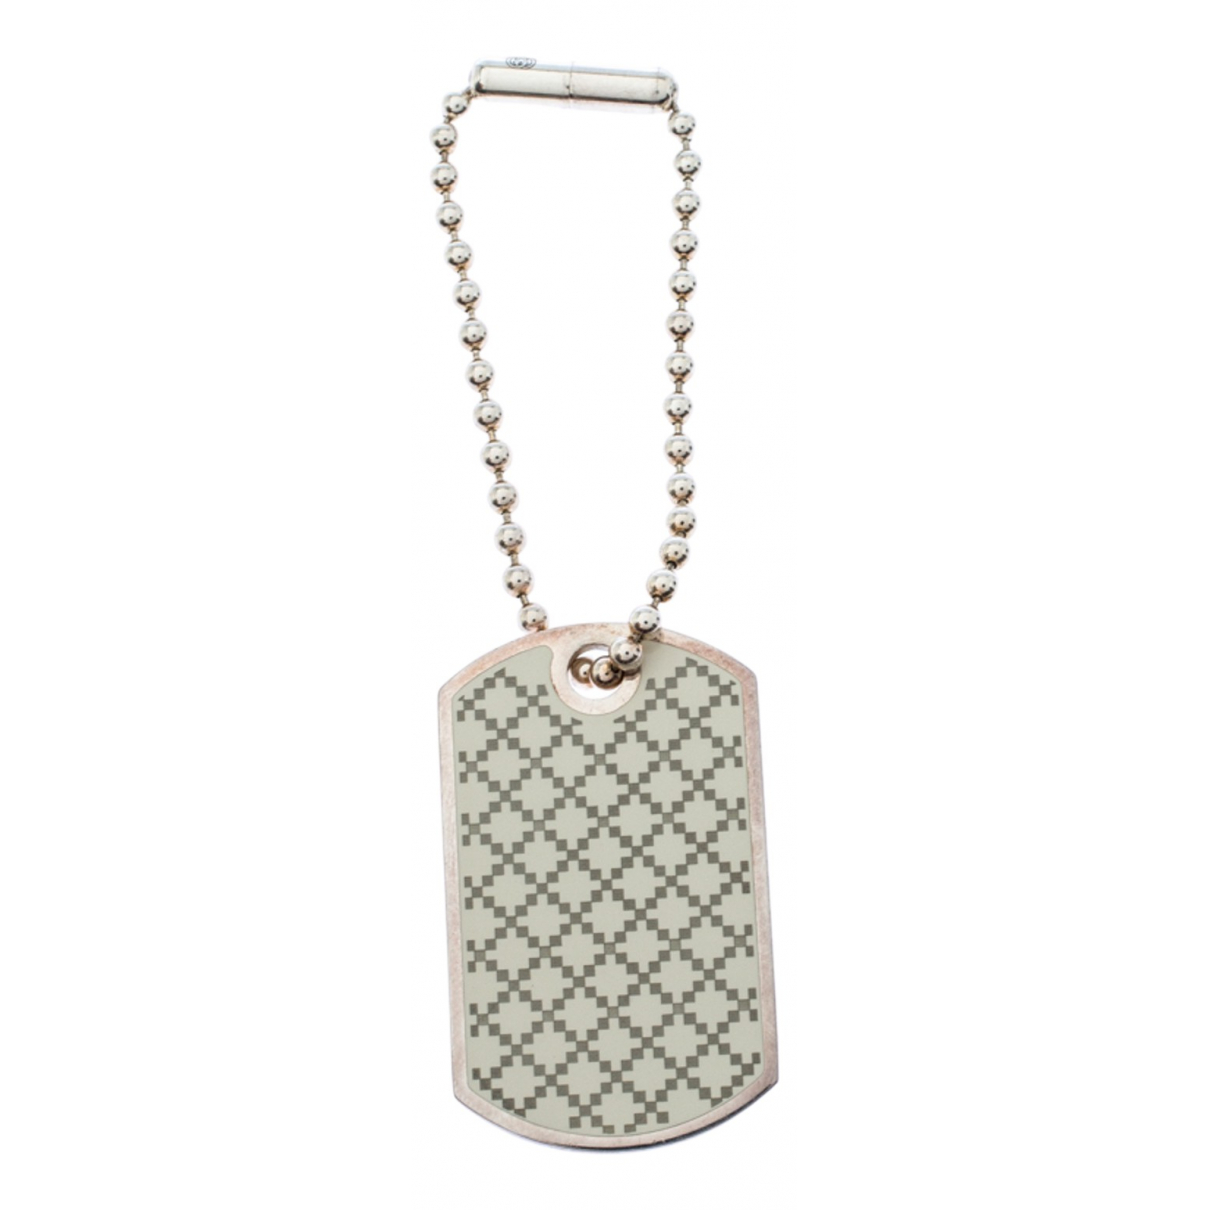 Gucci \N Silver pendant for Women \N